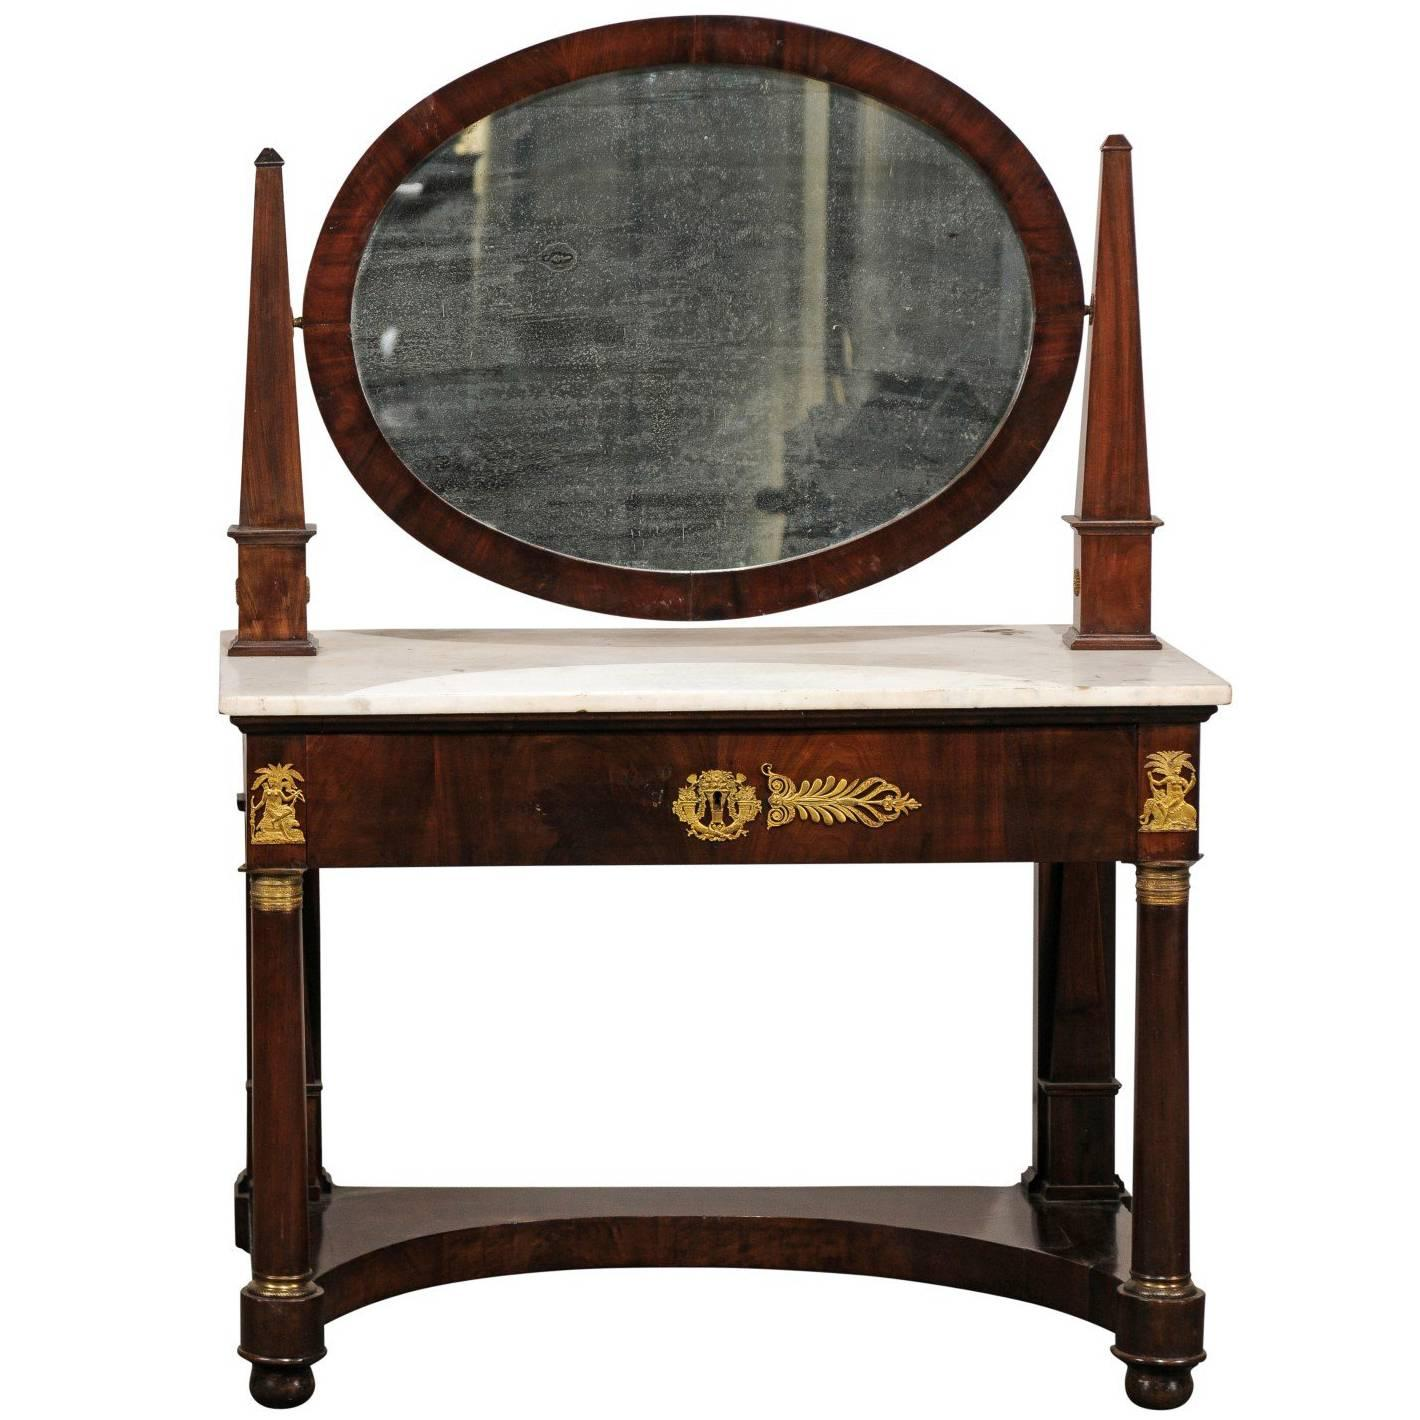 19th Century French Empire Flame Mahogany Marble Top Dressing Table with Mirror